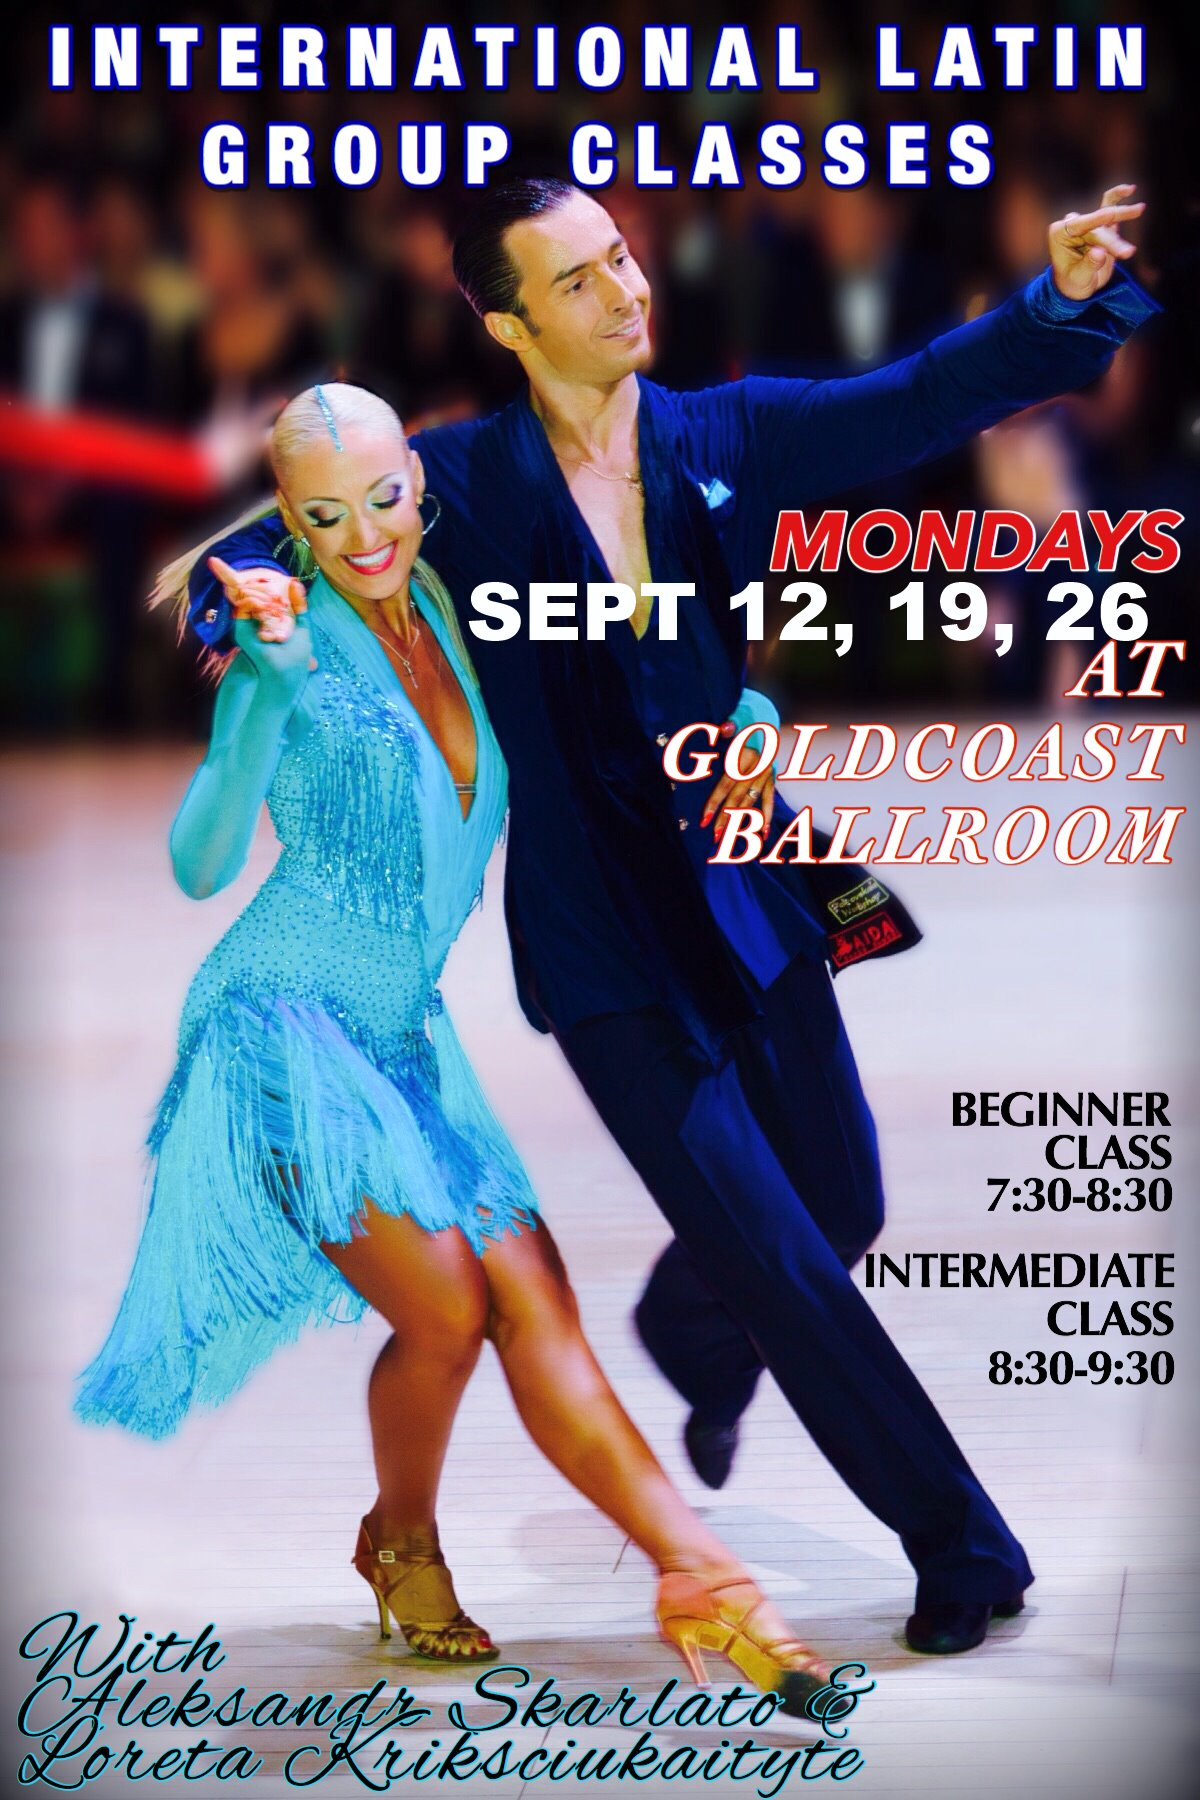 Aleksandr Skarlato & Loreta Kriksciukaityte - International Latin Classes - Mondays, Sept 12, 19, 26 at Goldcoast Ballroom